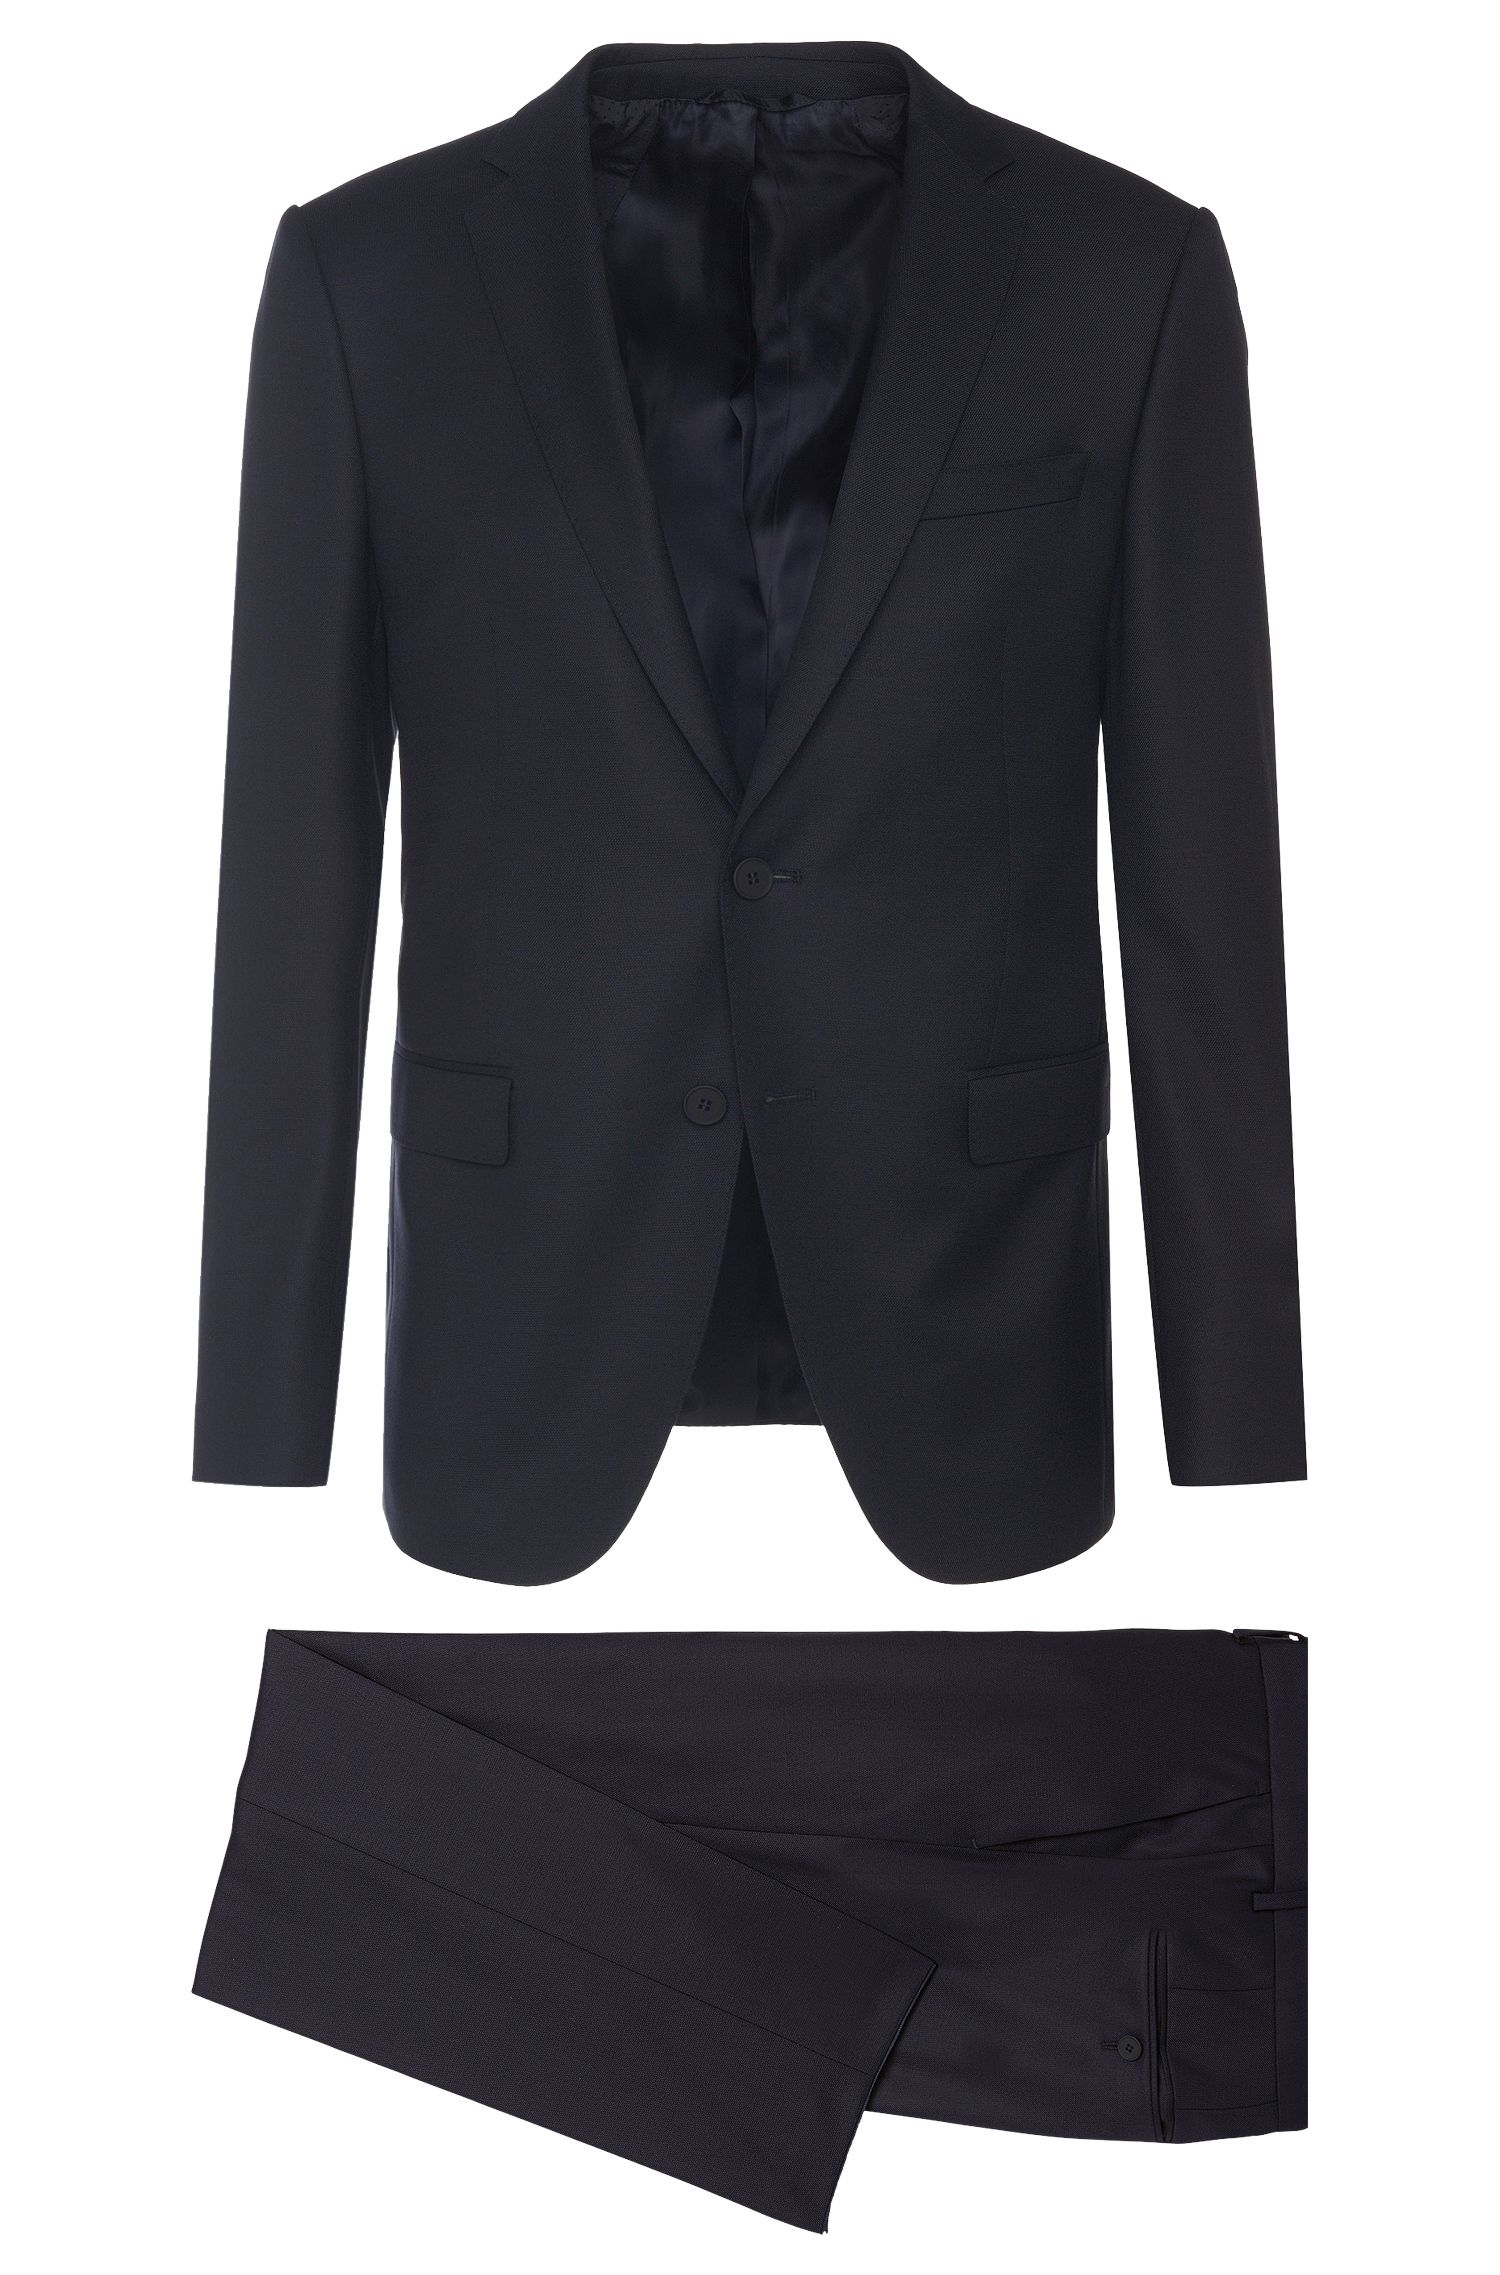 'Nestro/Byte' | Slim Fit, Super 120 Italian Wool Traveler Suit